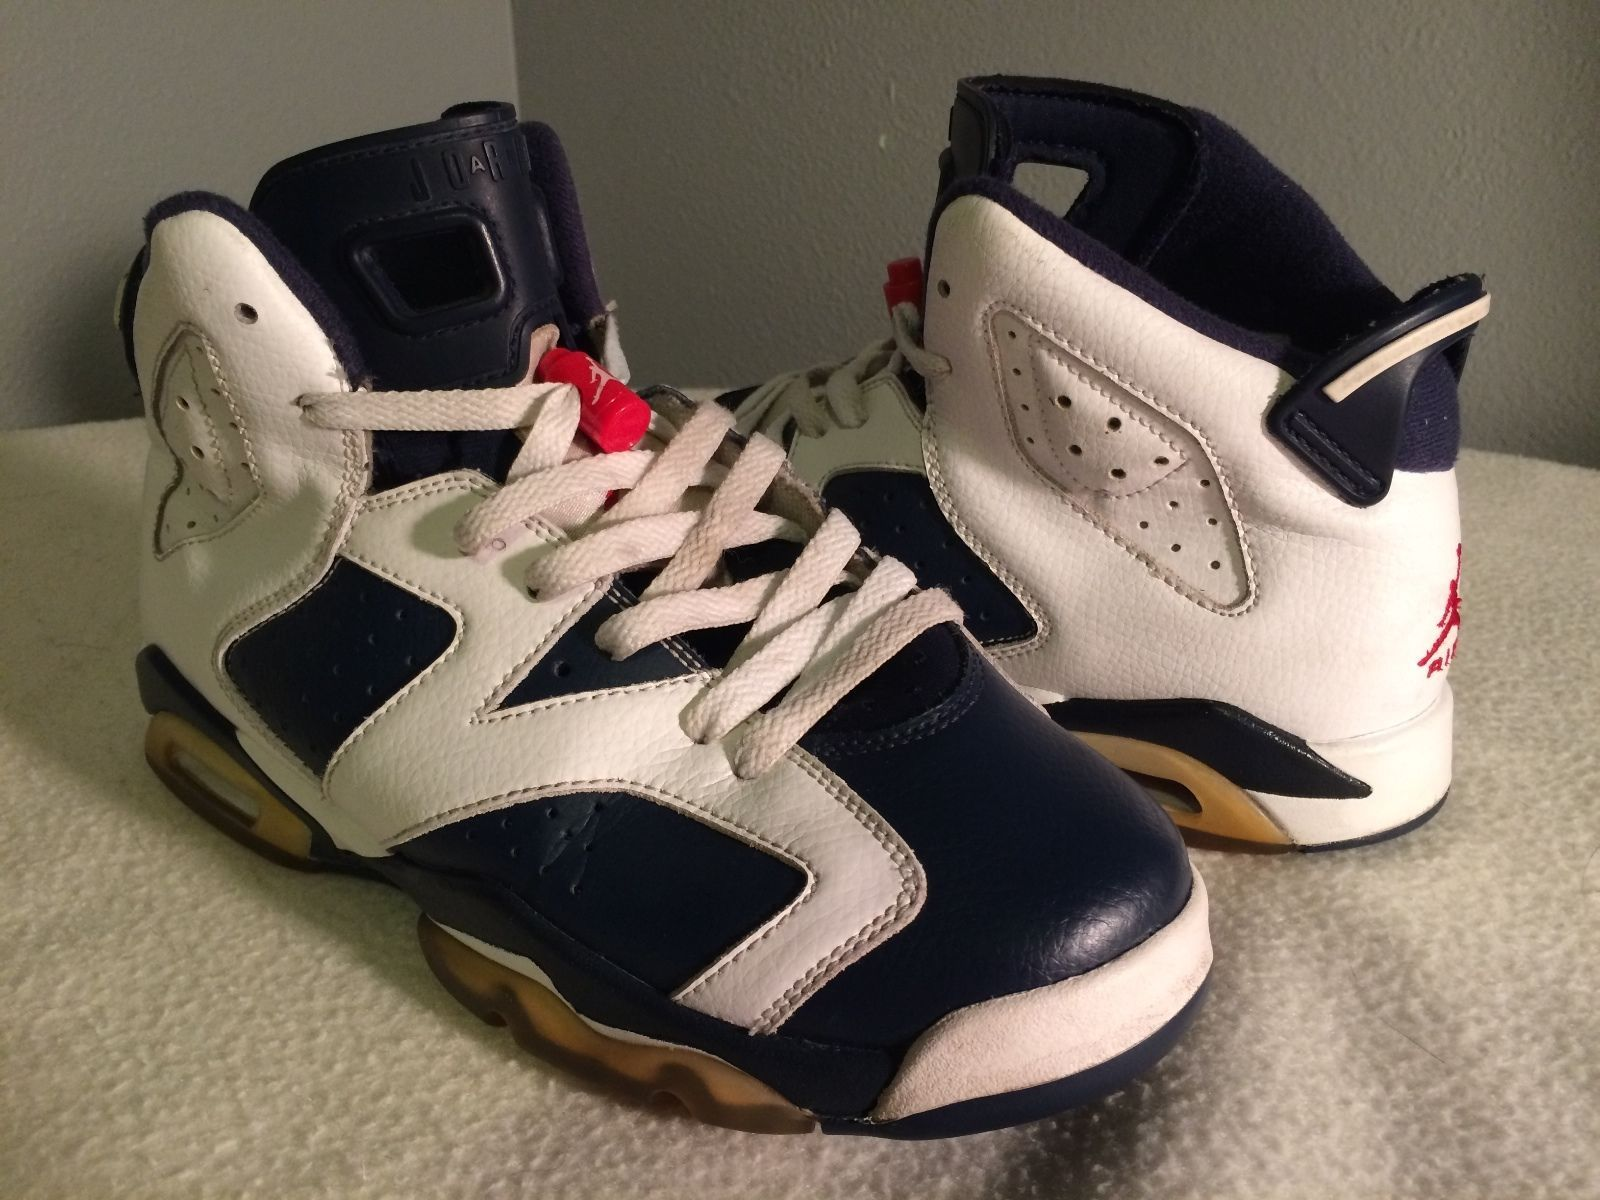 brand new 96f4d 27e0d Nike Air Jordan 6 VI Retro White Navy Olympic Size 7Y (384665-130) FREE  SHIPPING